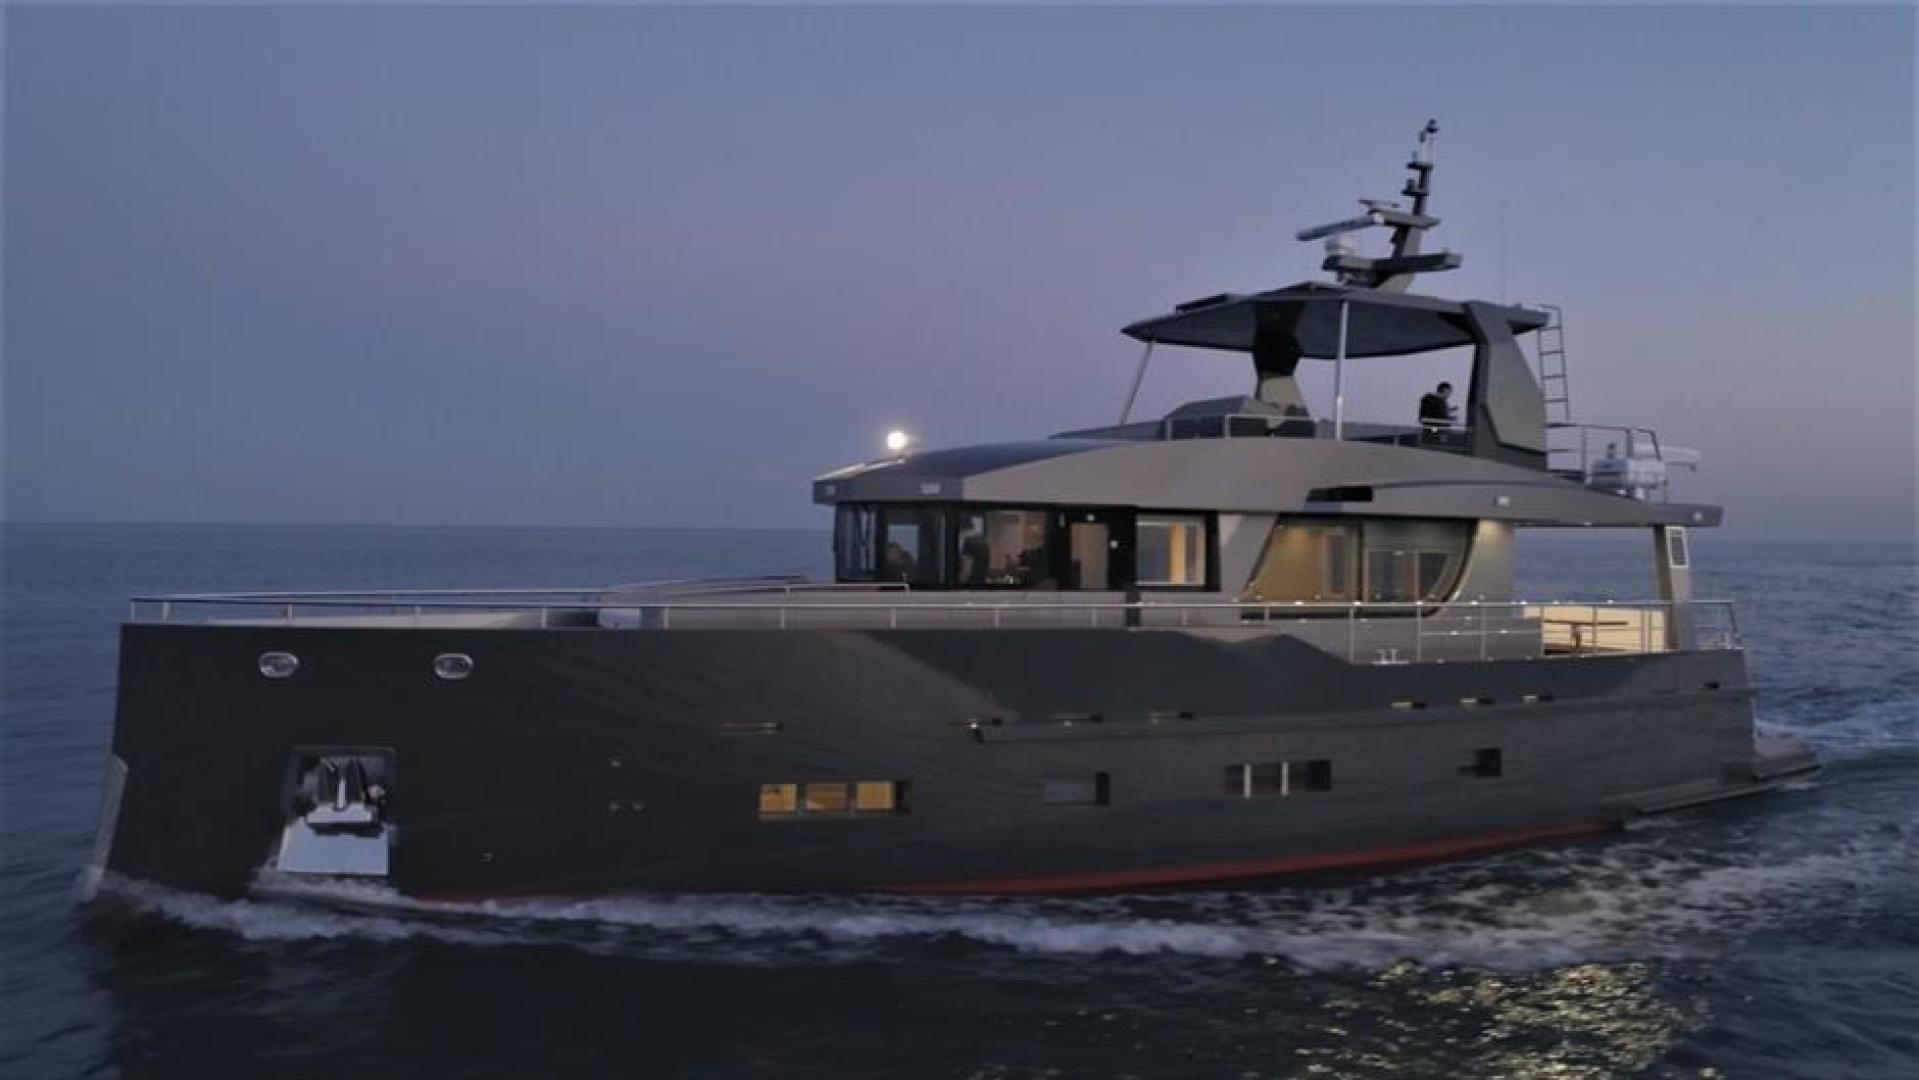 Bering-Expedition Yacht 2019-Expedition Yacht Turkey-1405106   Thumbnail